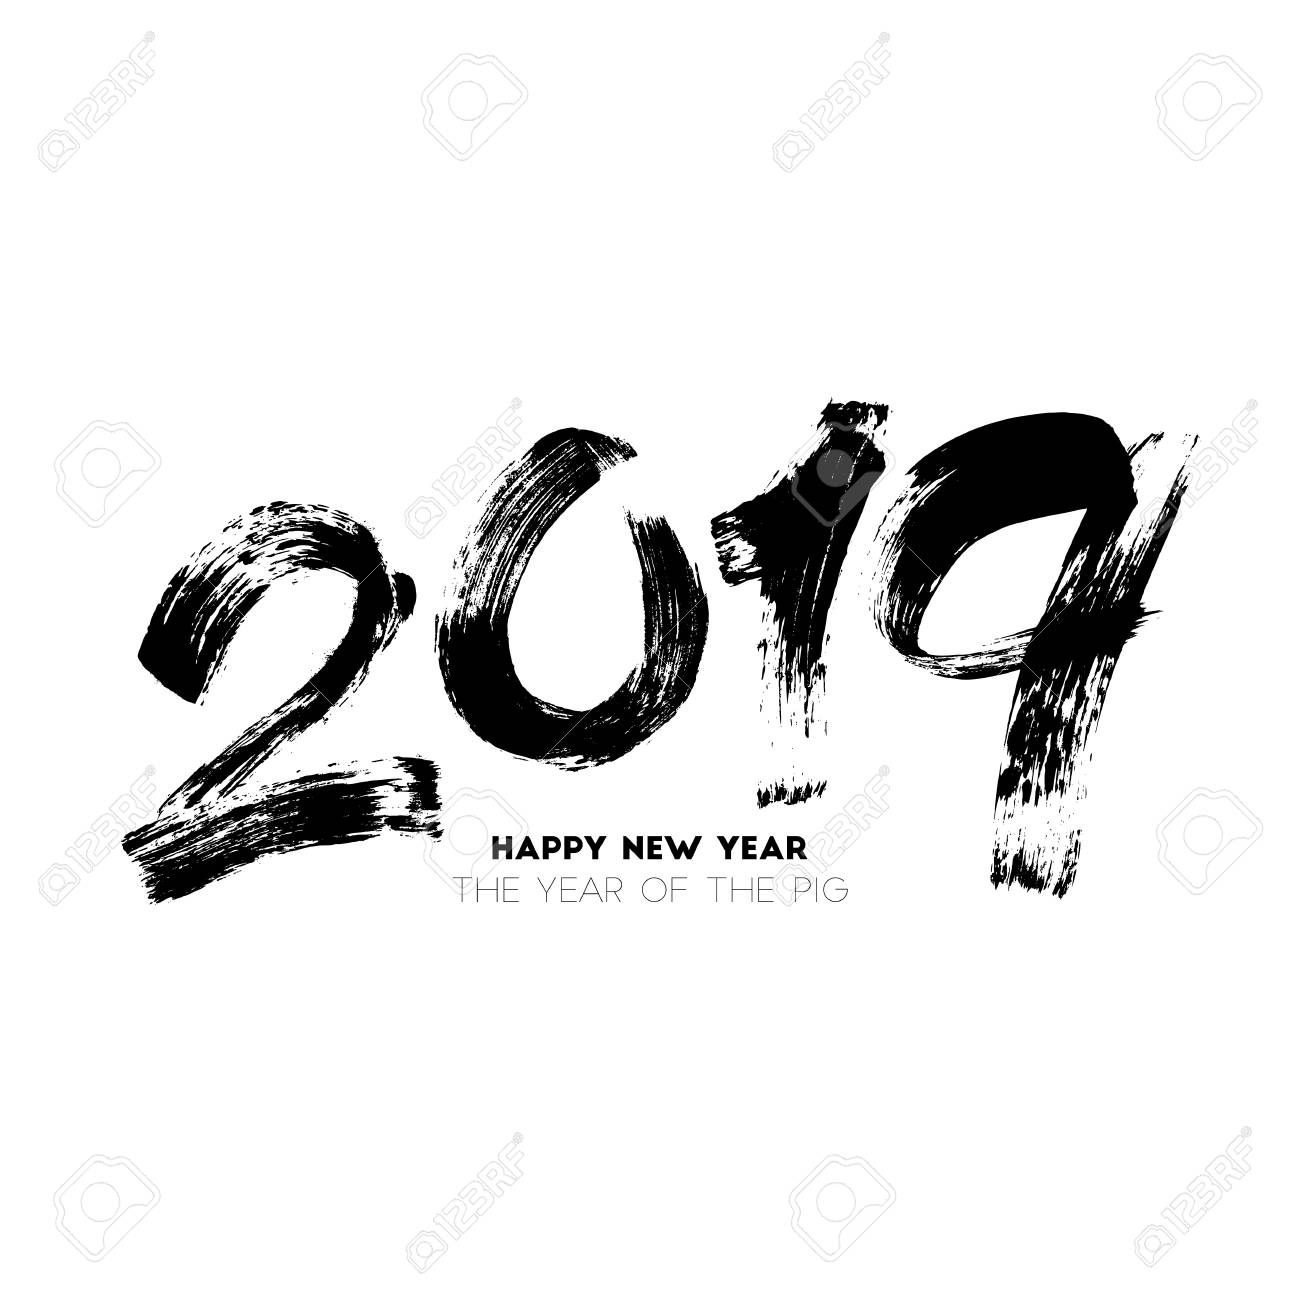 Brush painted vector illustration of the 2019 New Year. The year of the pig. Handwritten lettering isolated on white background for your poster, banner, invitation or greeting card design - 106962226